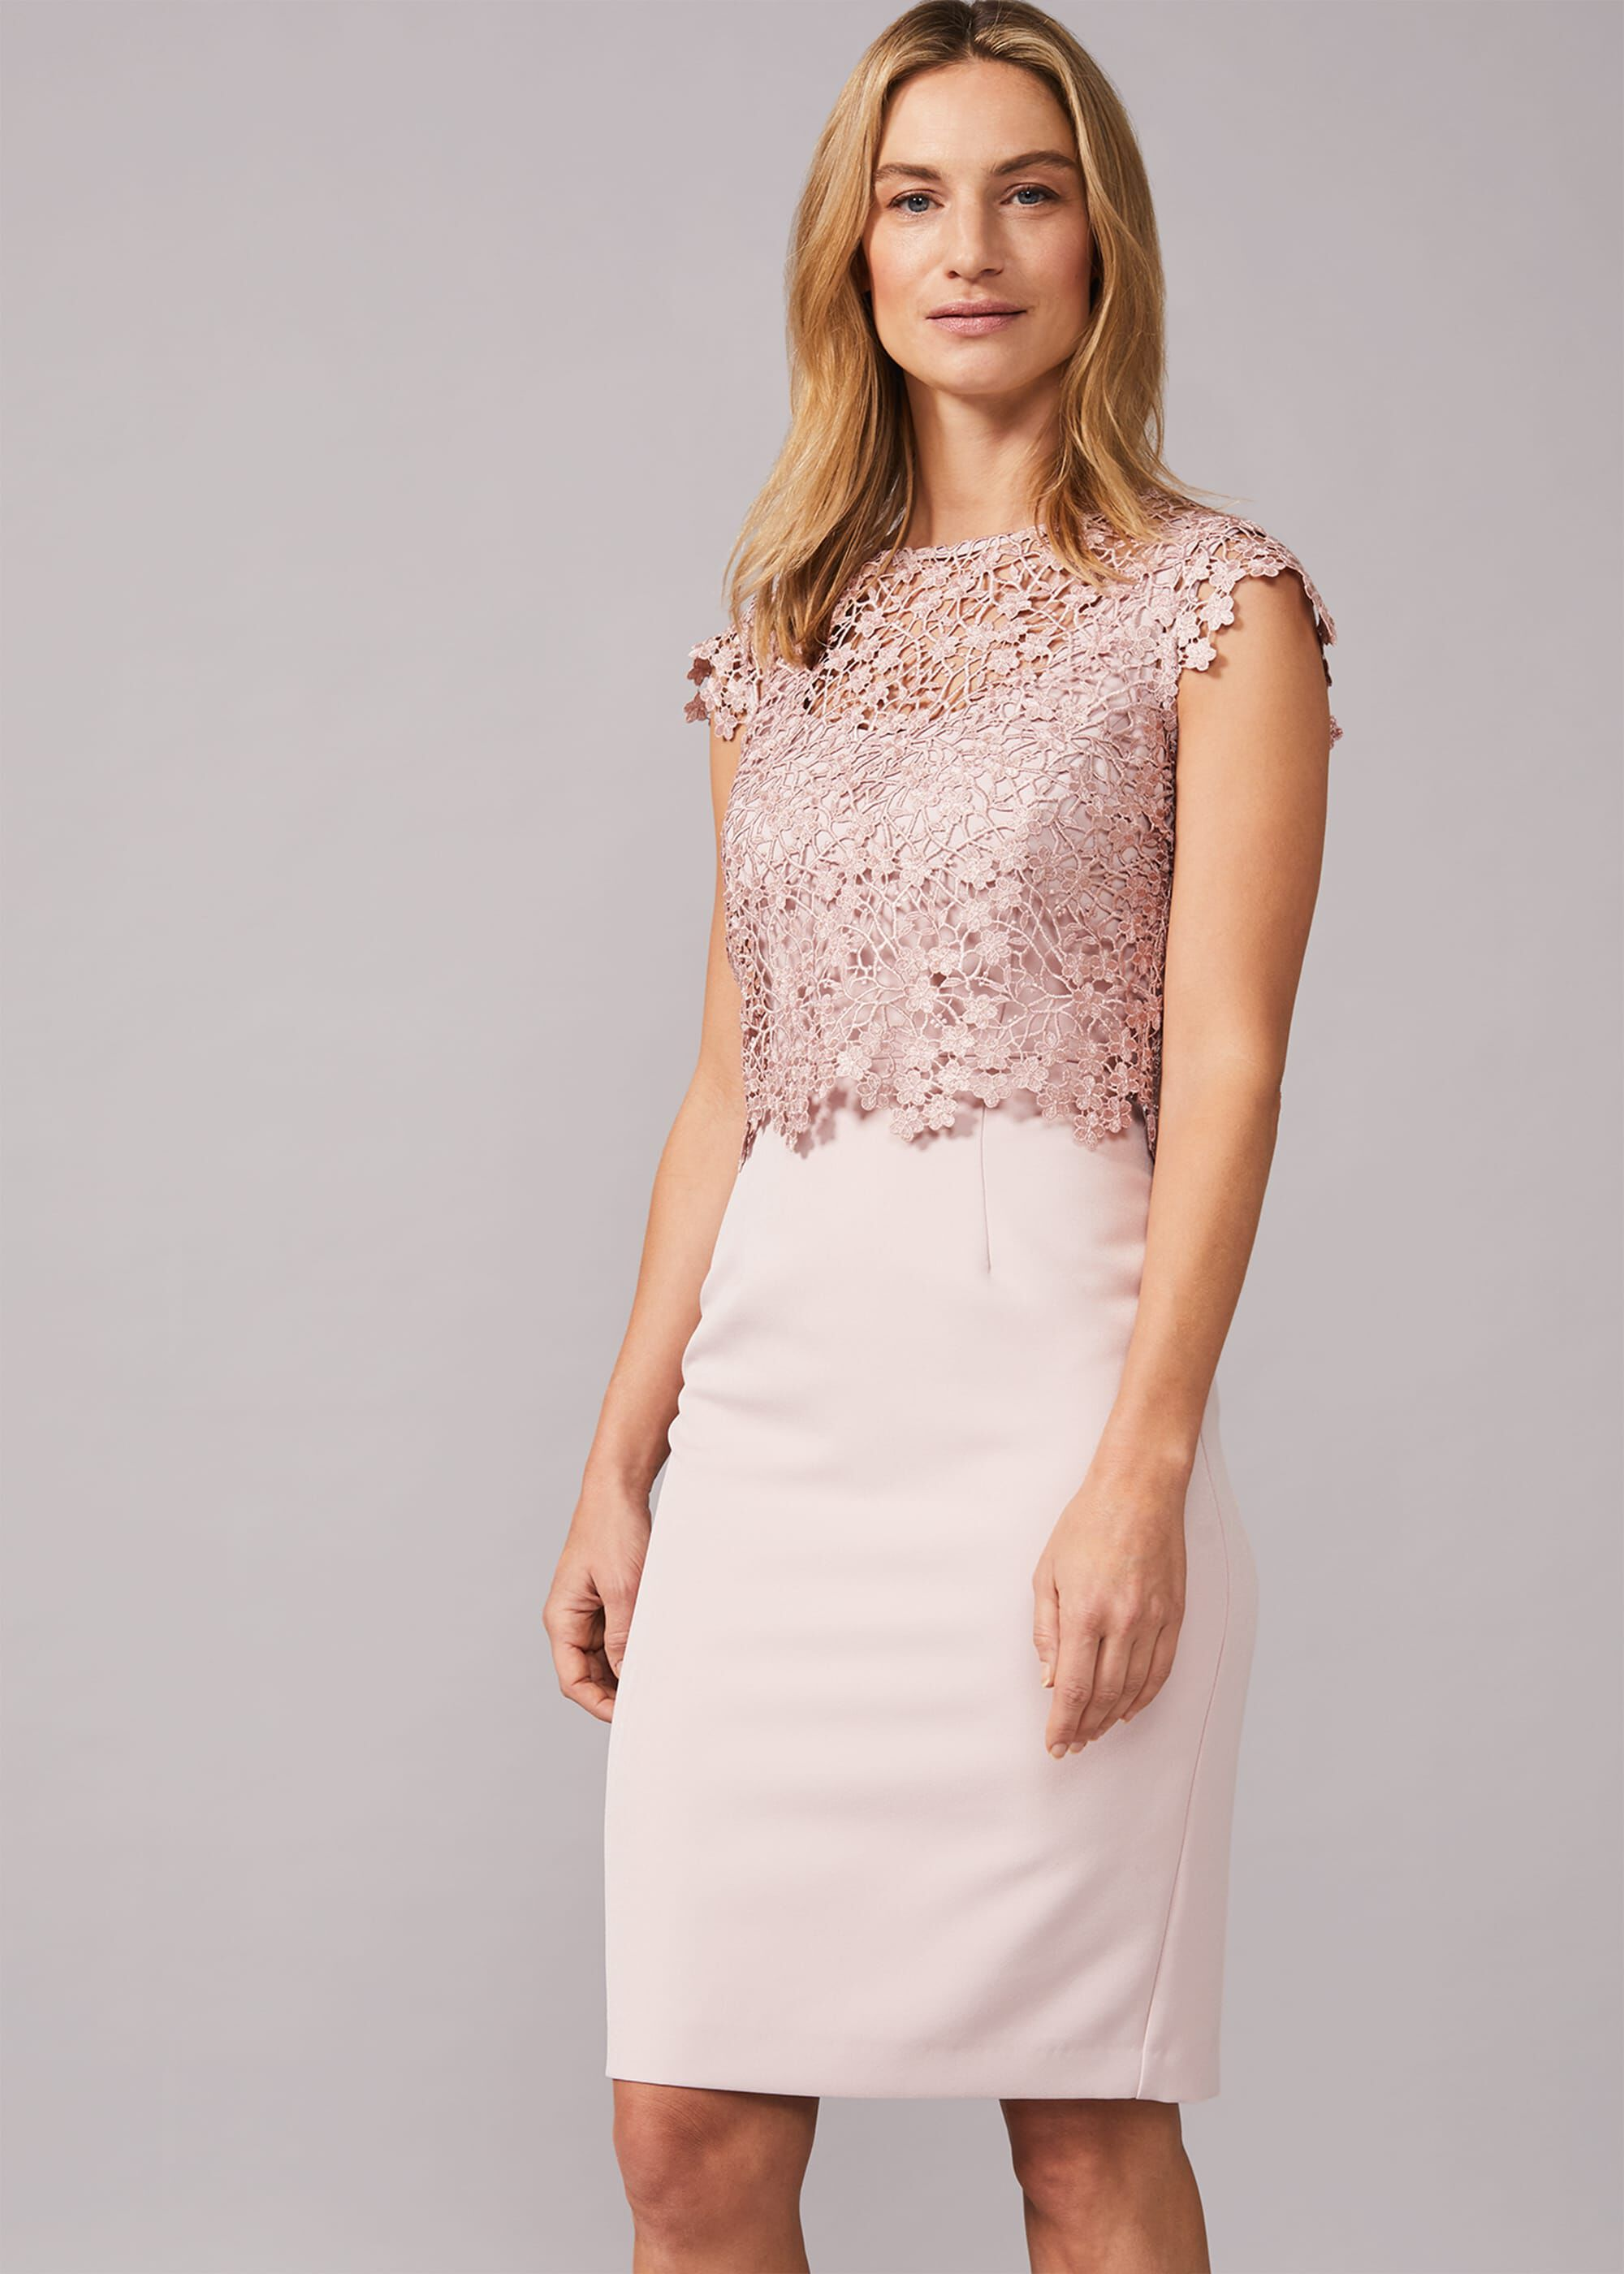 Phase Eight Mariposa Floral Lace Bodice Dress, Pink, Fitted, Occasion Dress